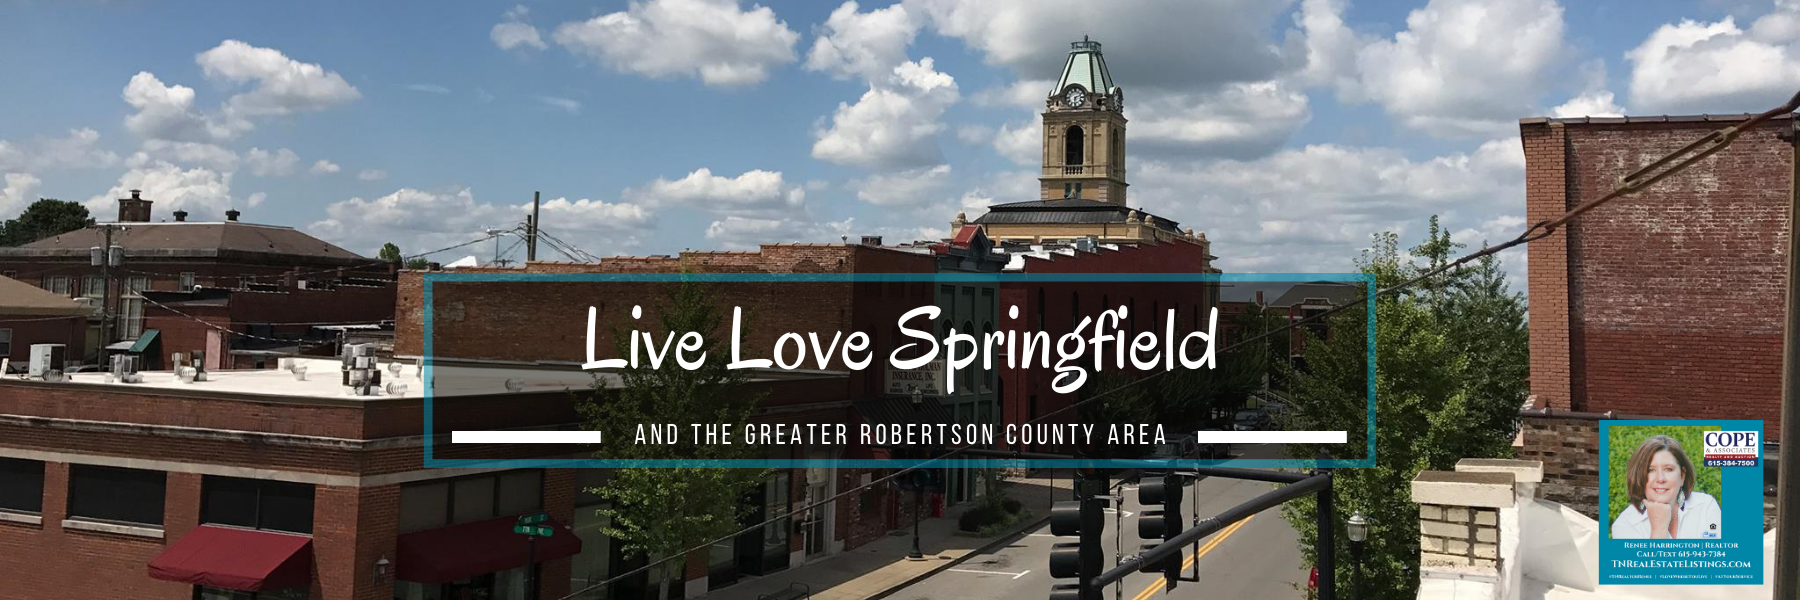 Live Love Springfield And the Greater Robertson County area